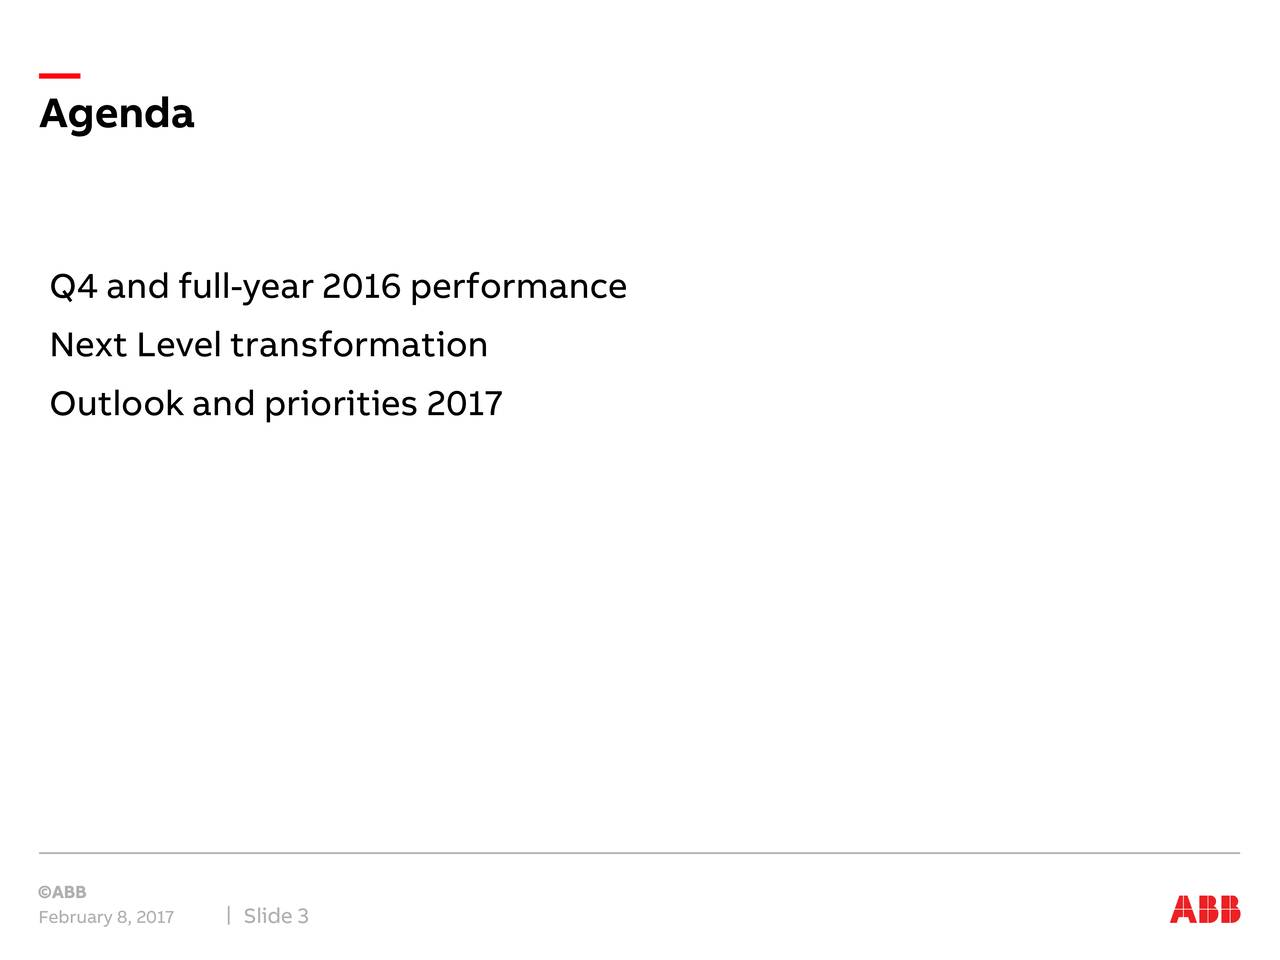 Q4 and full-year 2016 performance Next Level transformation Outlook and priorities 2017 February 8, 2017de 3